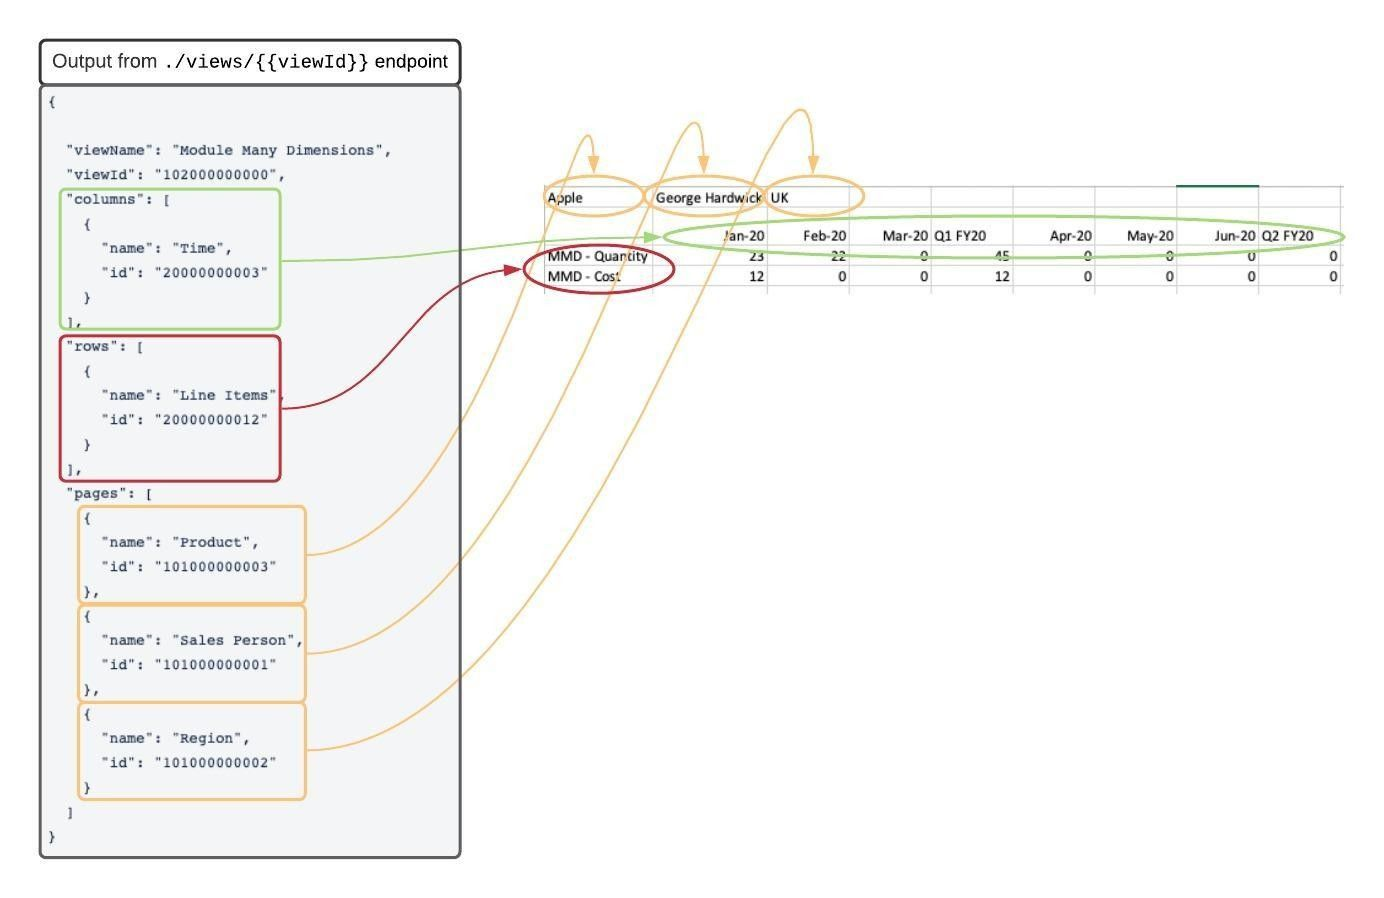 A diagram showing how dimensions in API output map to an export file in CSV format.